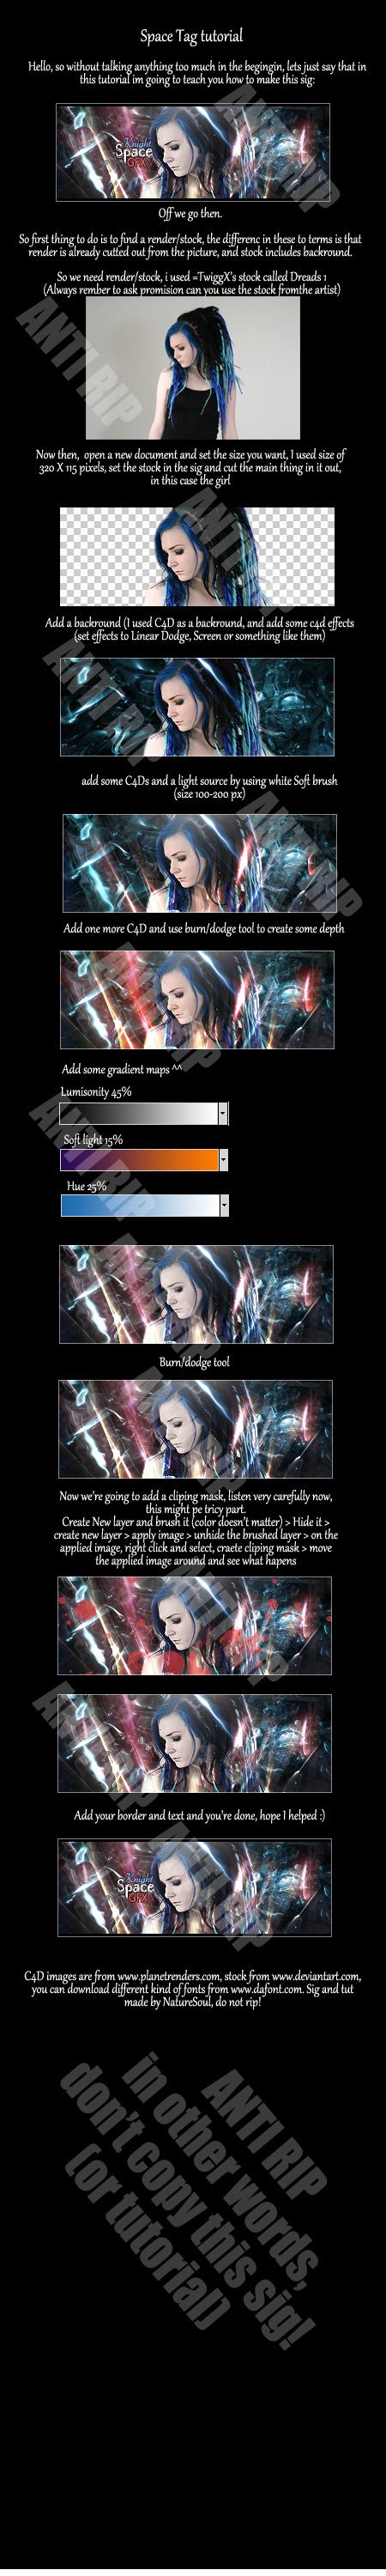 [Photoshop - Tutorial][Gfx - Space Girl by:NatureSoul] Space_Tag_tutorial___NatureSou_by_NatureSoul